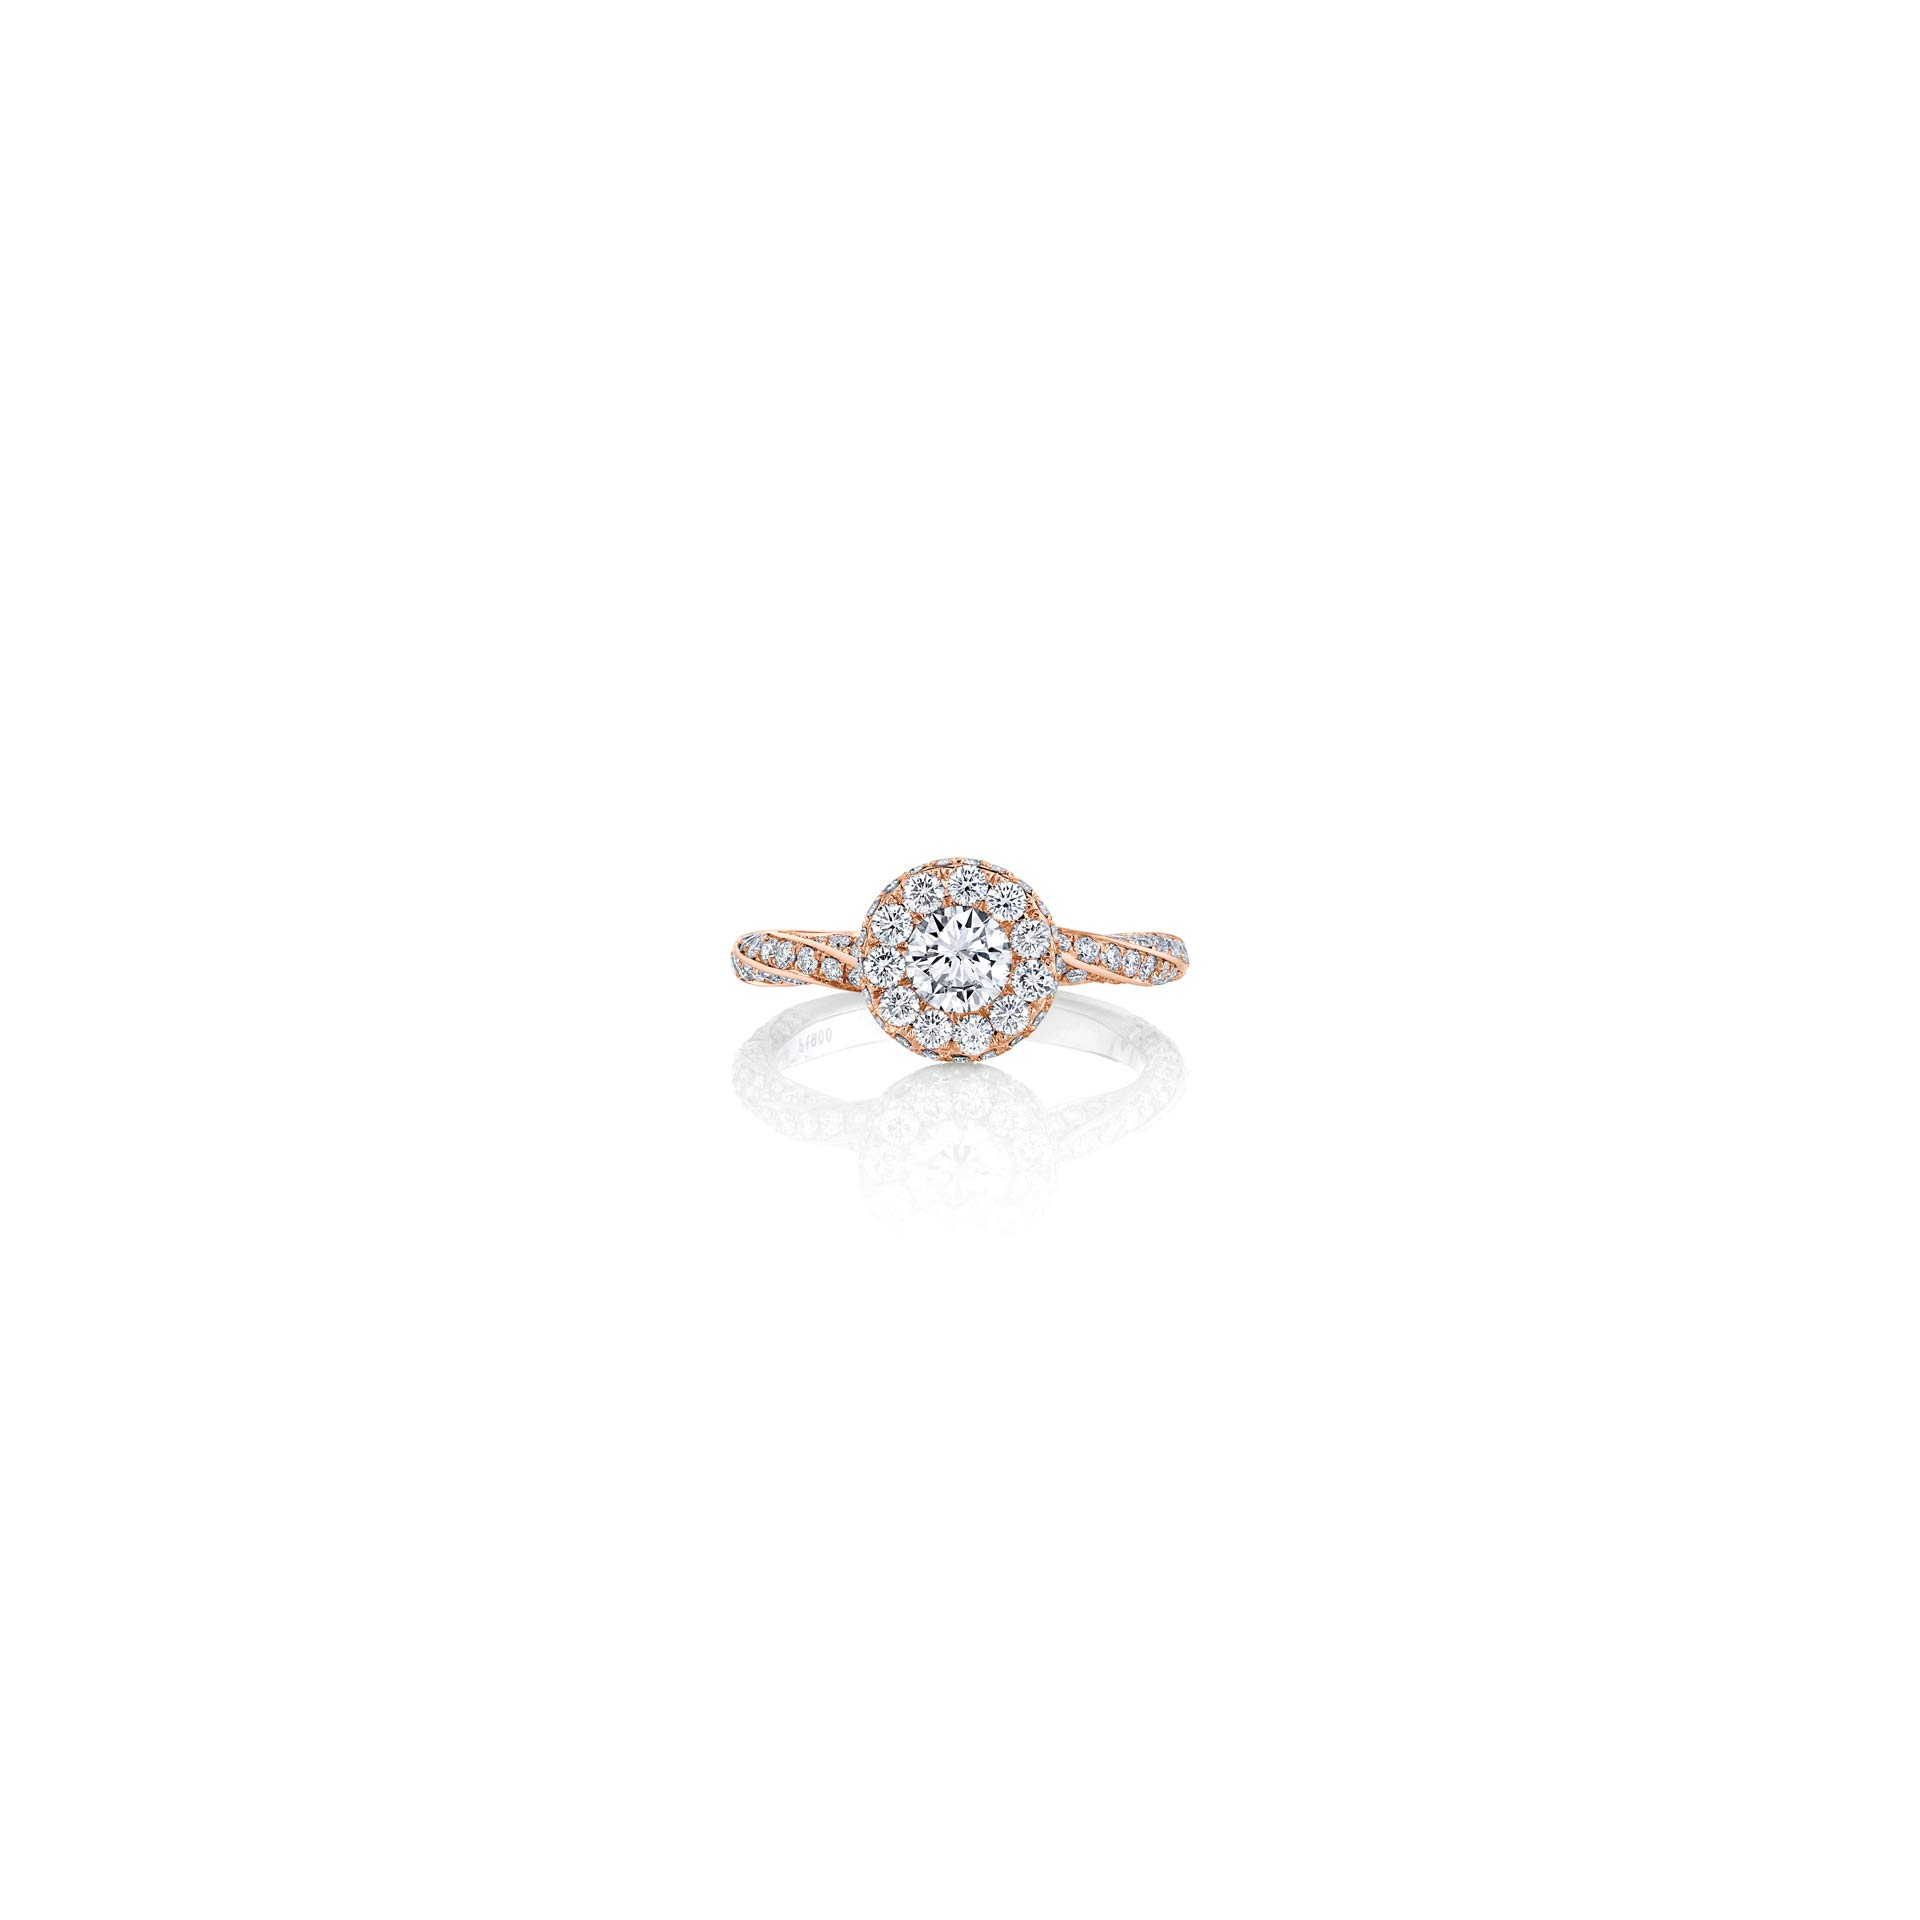 Camille Round Brilliant Seamless Halo® Engagement Ring with diamond pavé in 18k Rose Gold Front View by Oui by Jean Dousset